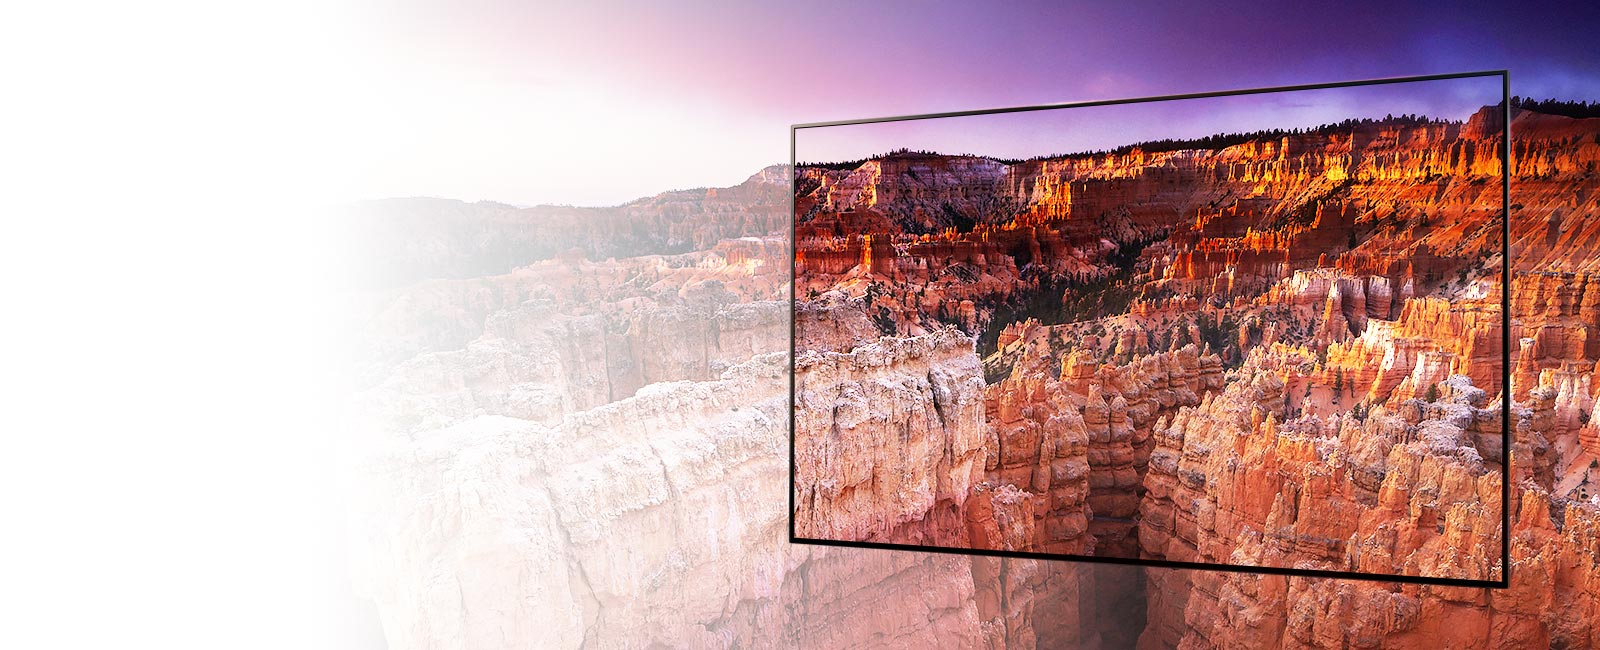 Find out more about LG OLED reliability1